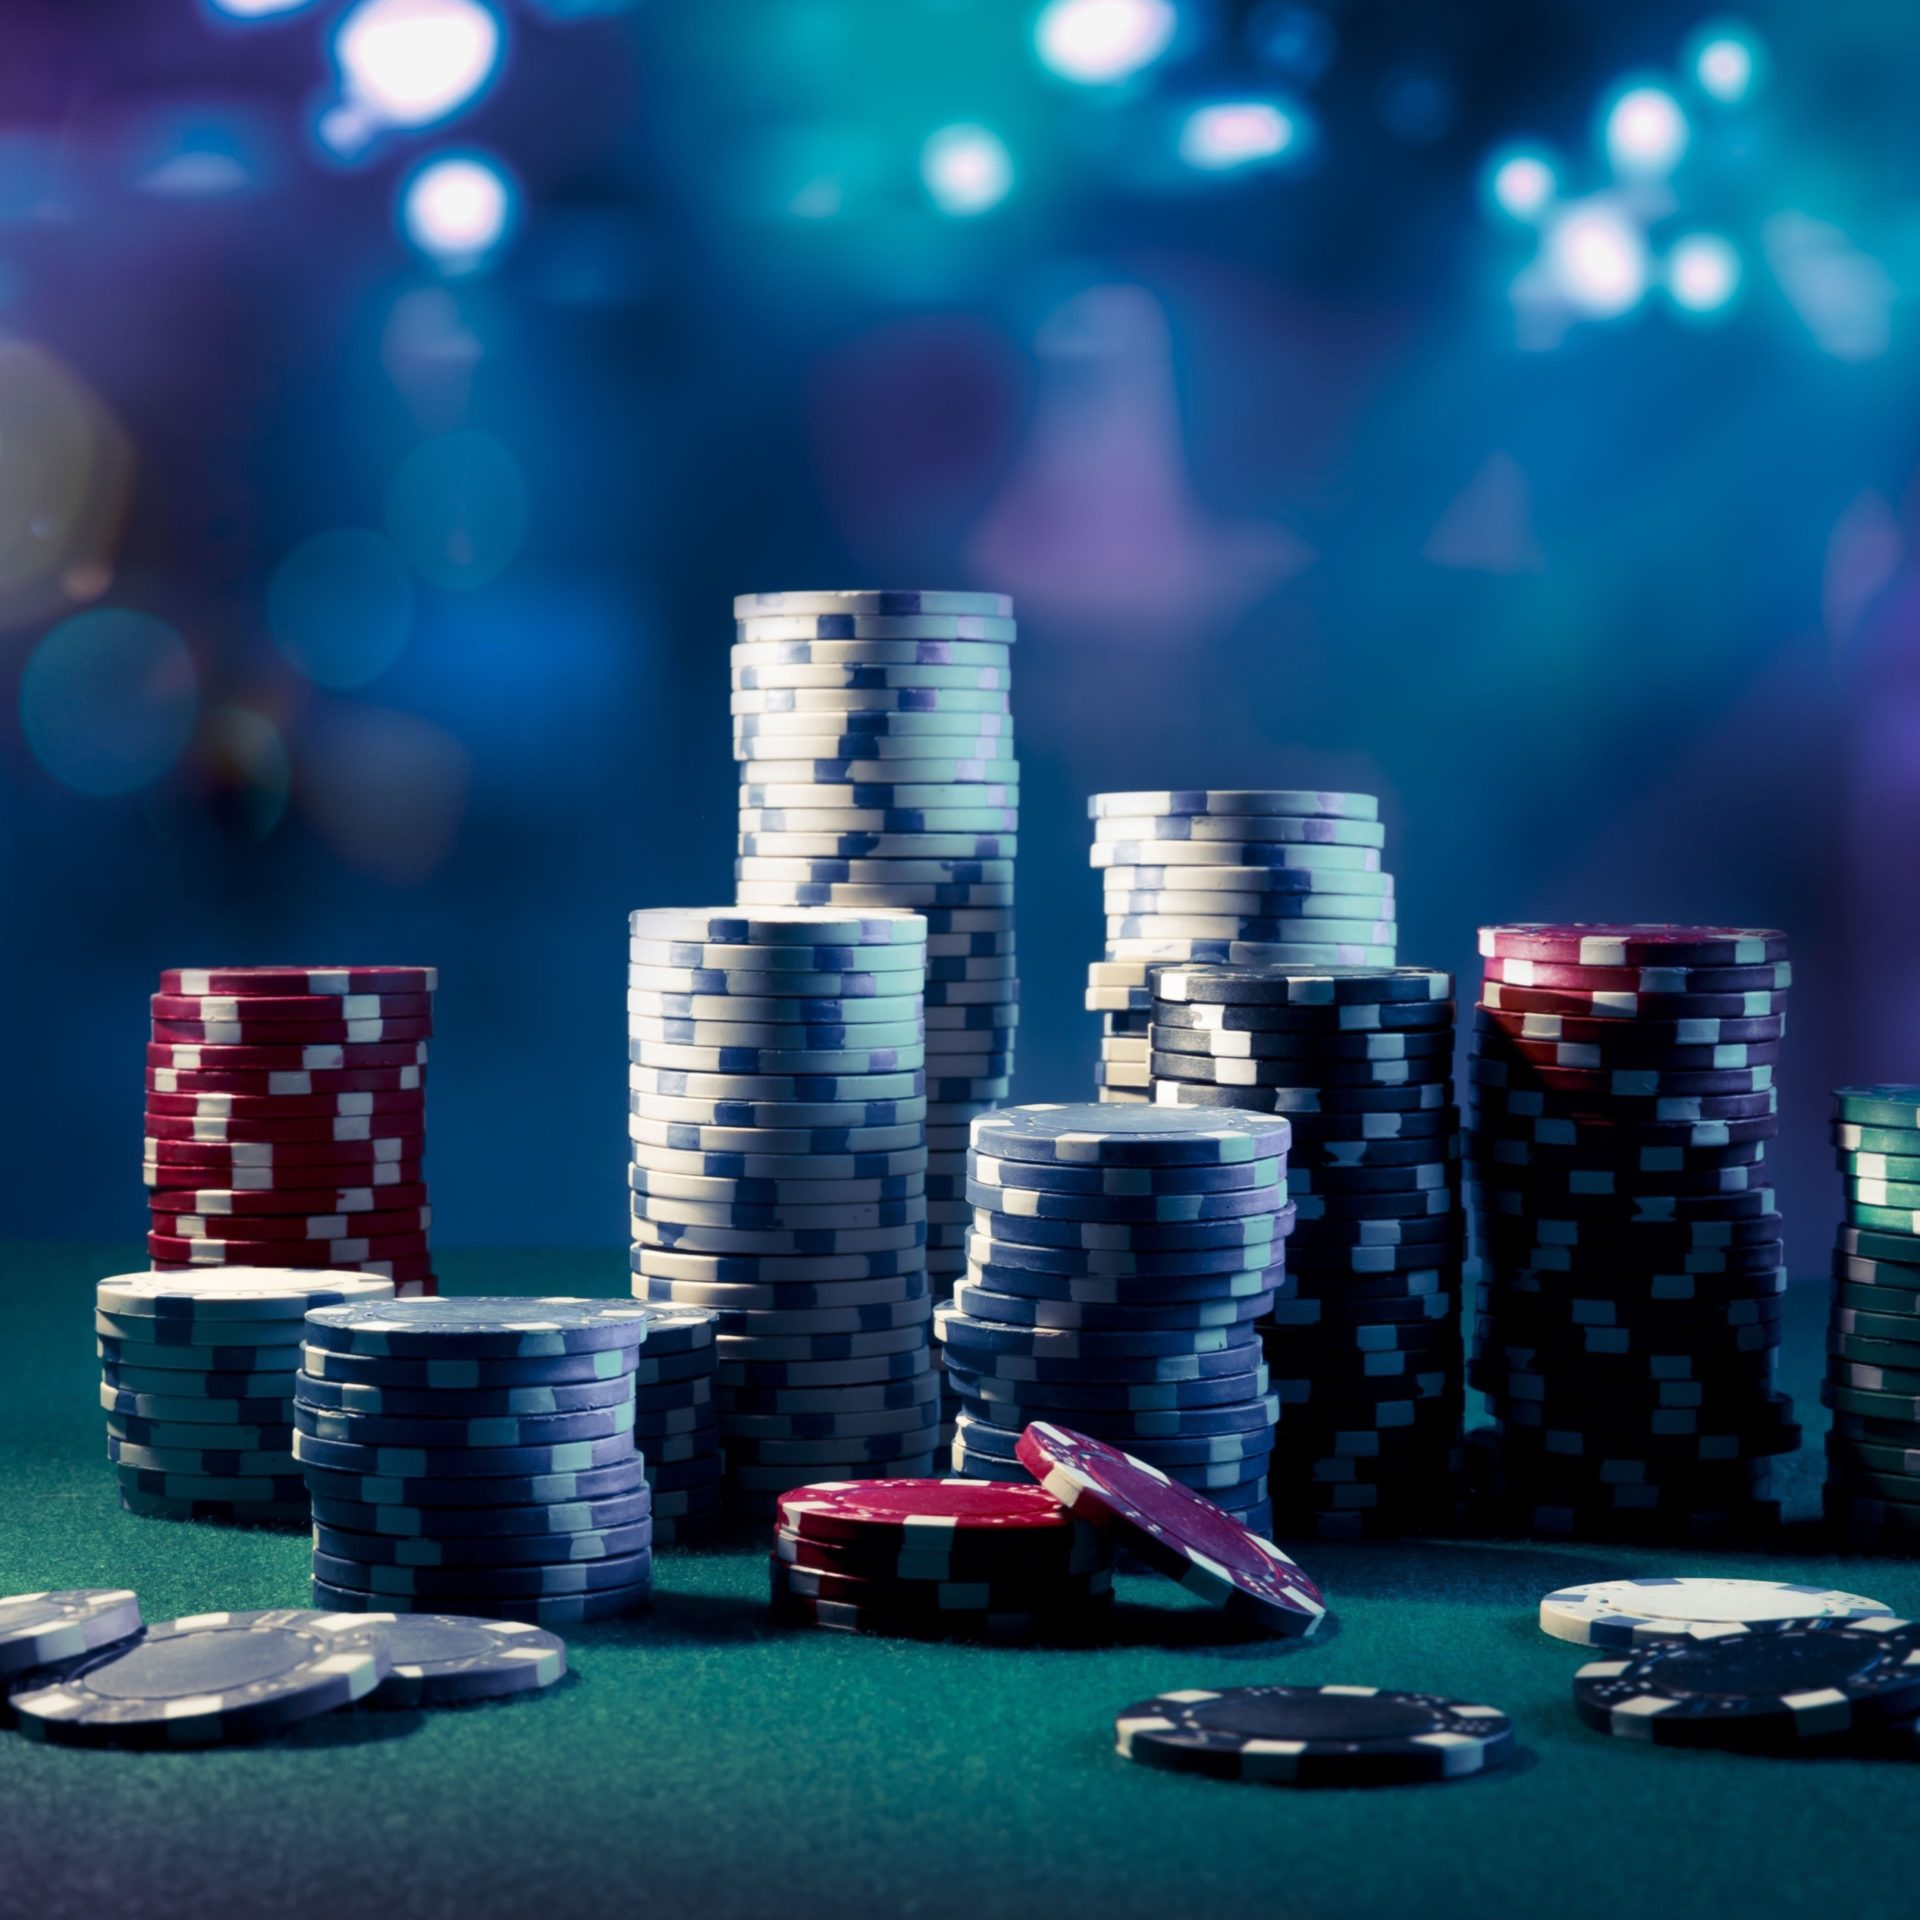 pokersquare - Web based gambling contrasted with different games in gambling